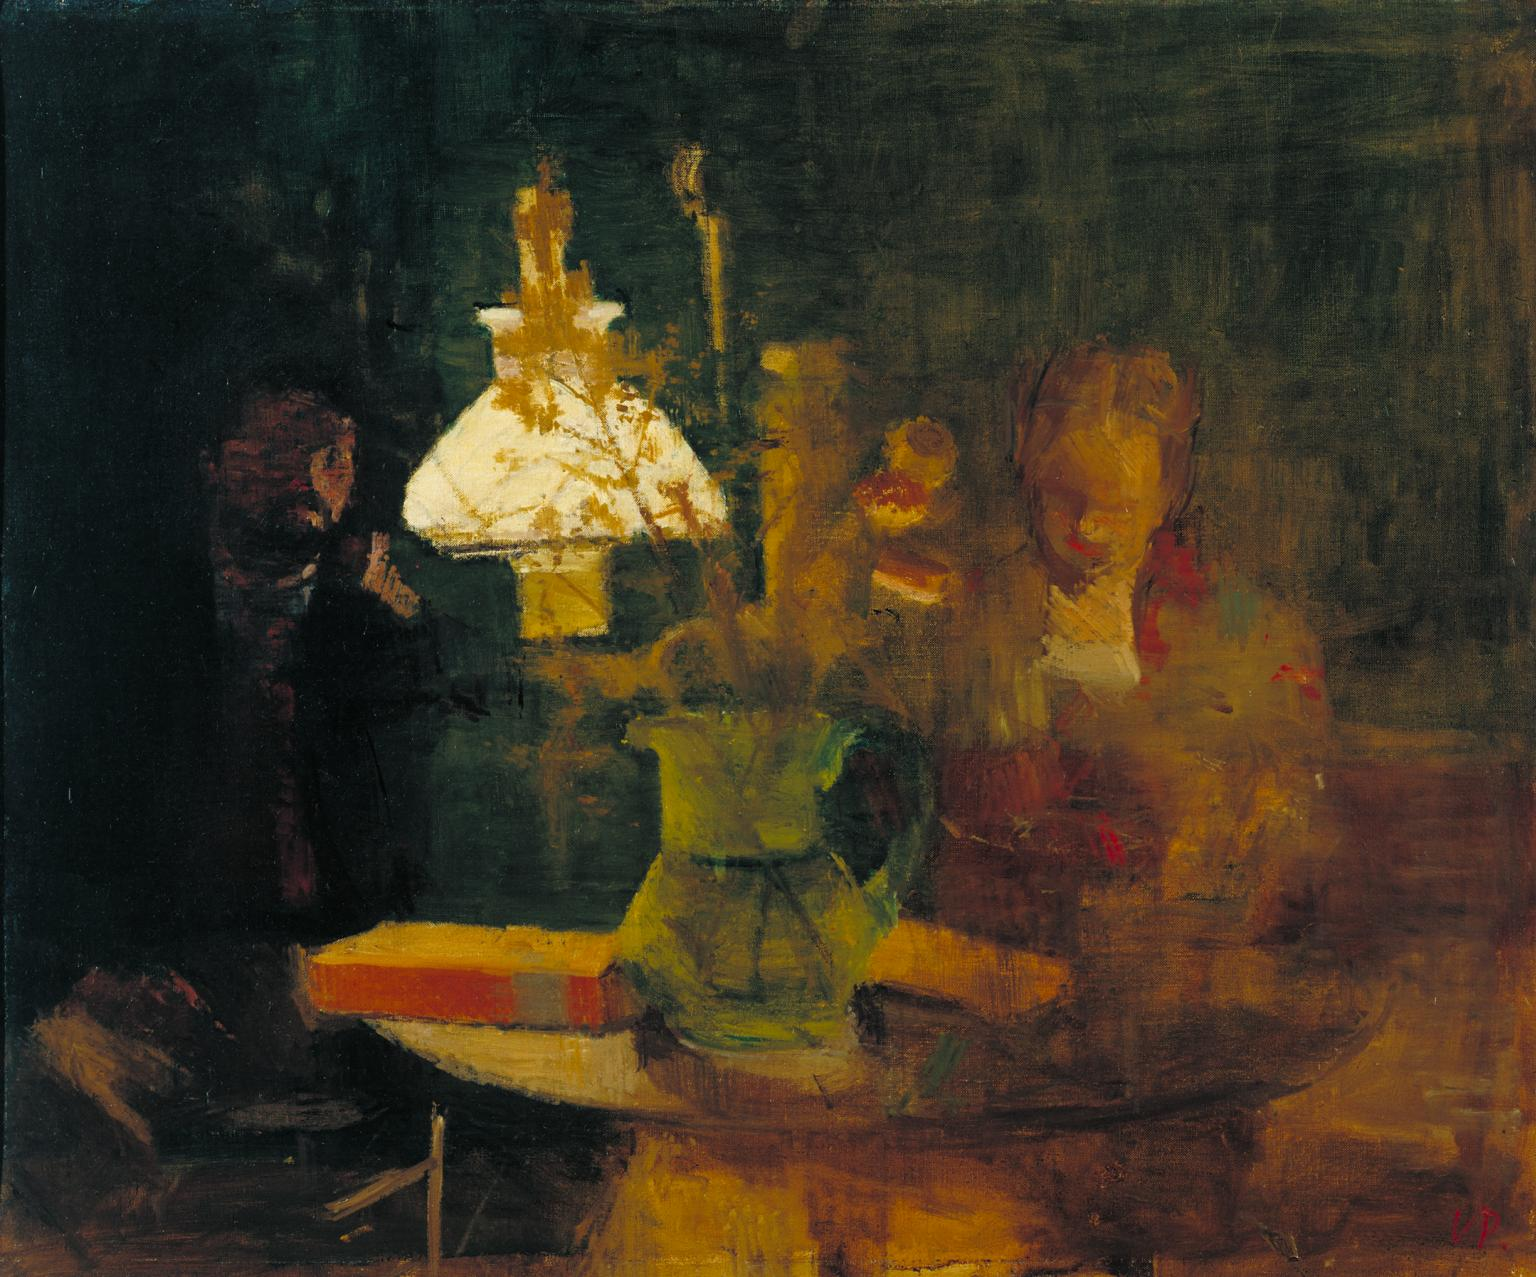 Lamplight 1941 by Victor Pasmore 1908-1998